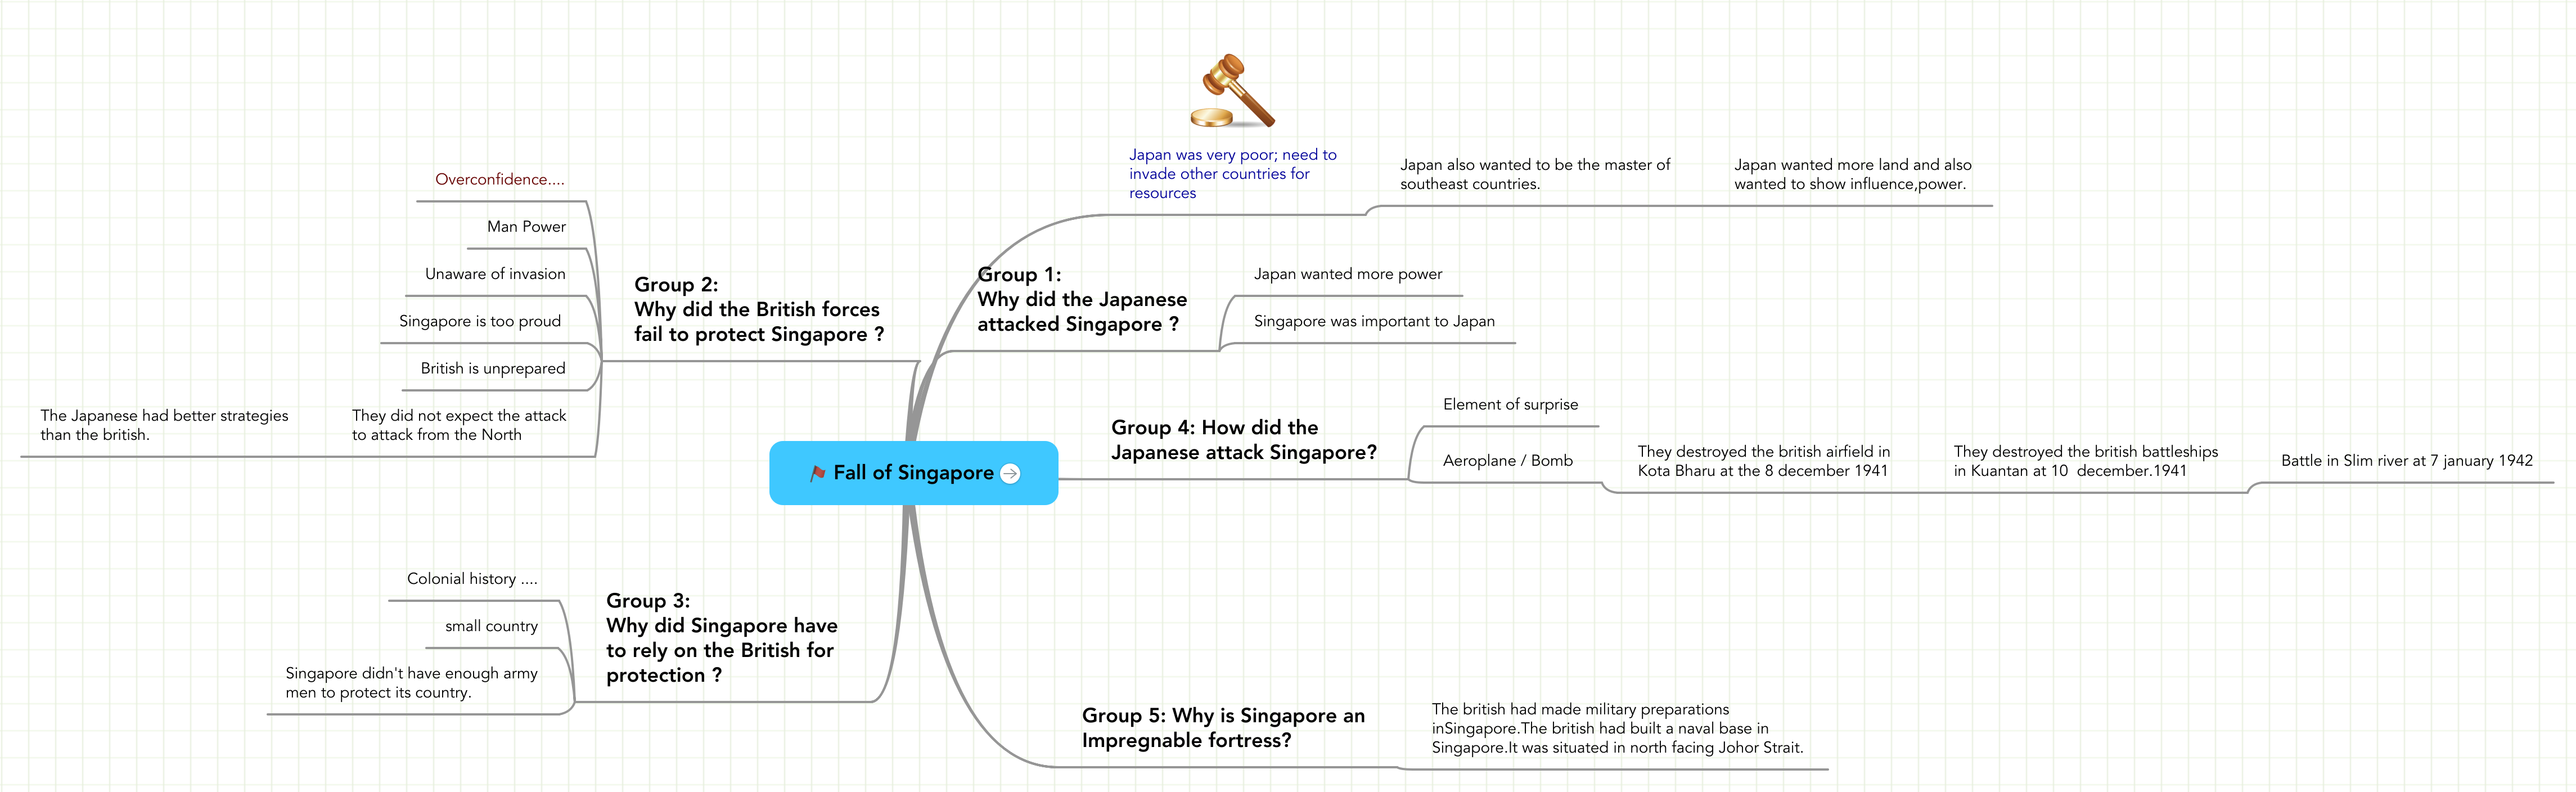 Fall Singapore Pictures on Fall Of Singapore   Mindmeister Mind Map